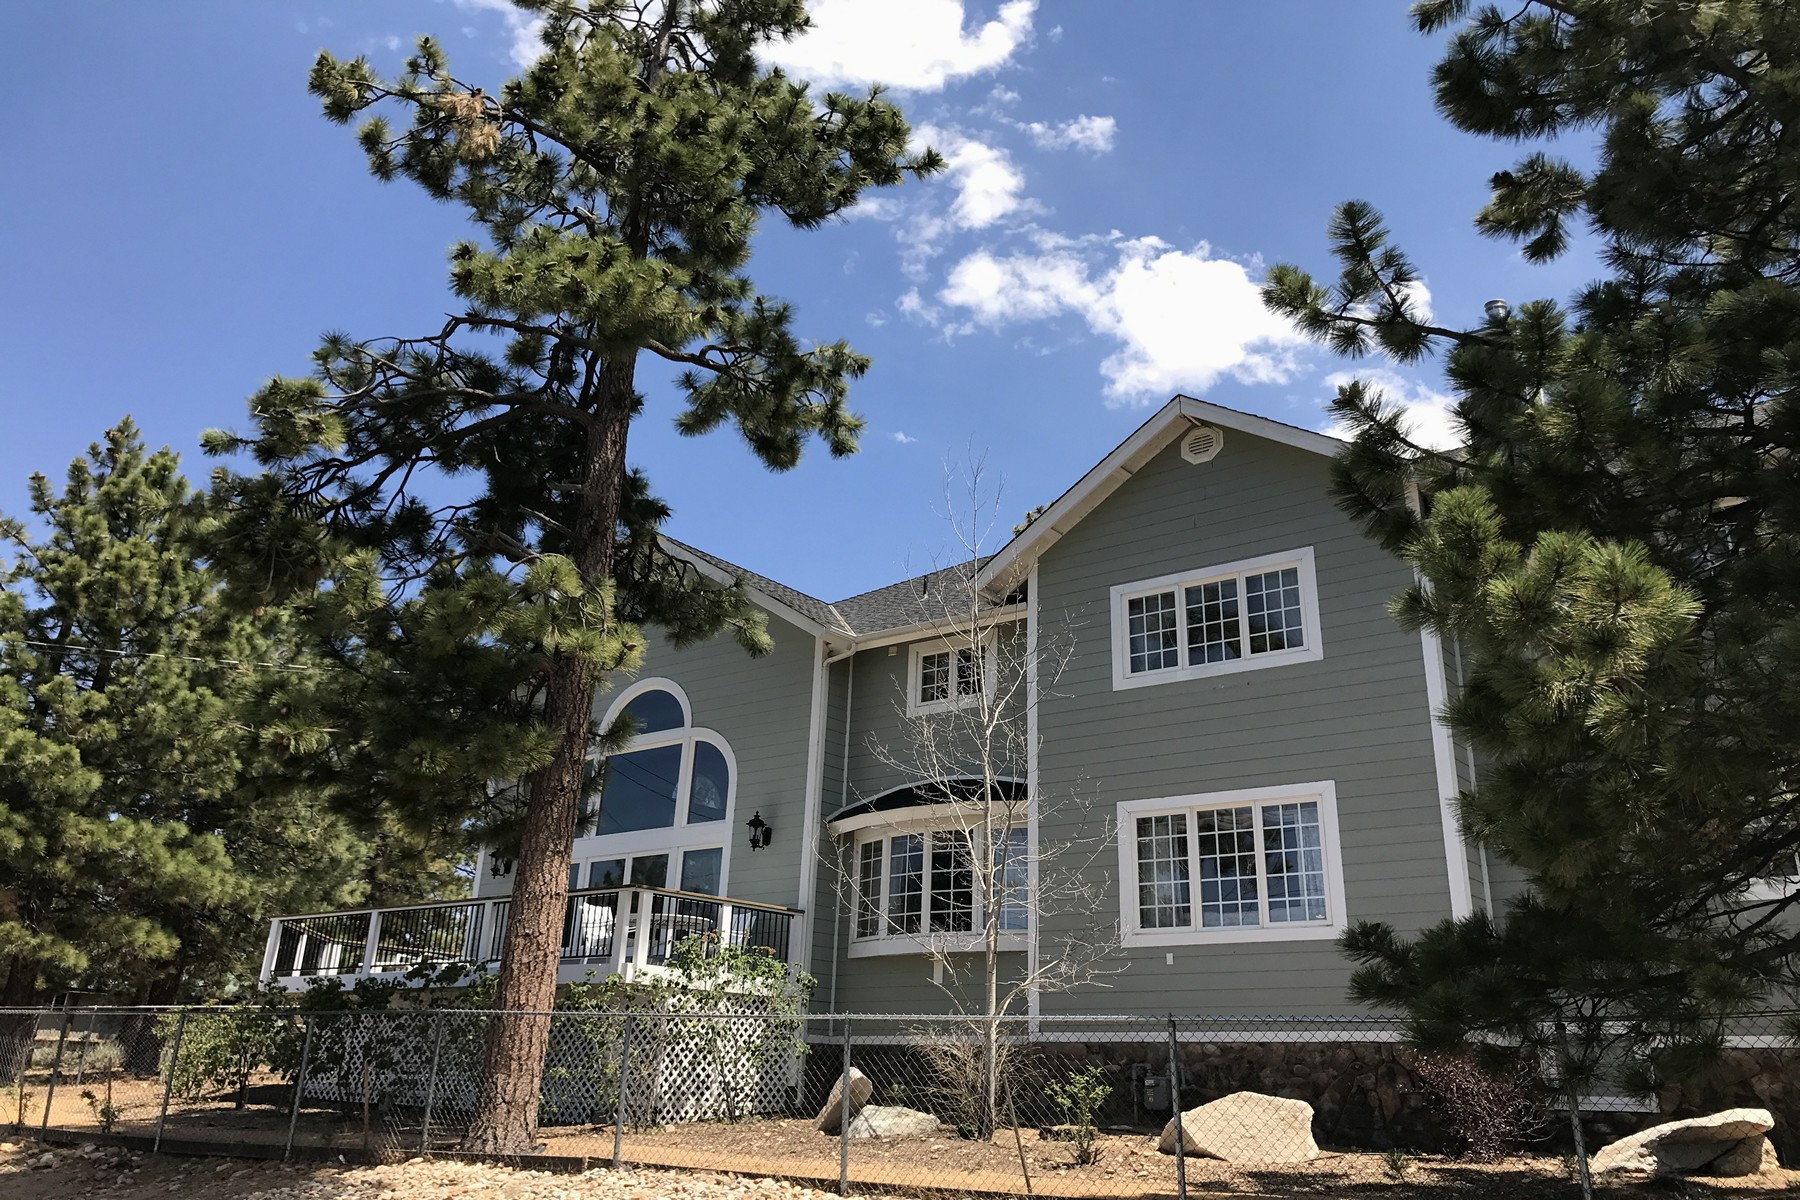 Single Family Home for Sale at 39614 Lake, Big Bear Lake Ca. 92315 39614 Lake Drive Big Bear Lake, California 92315 United States